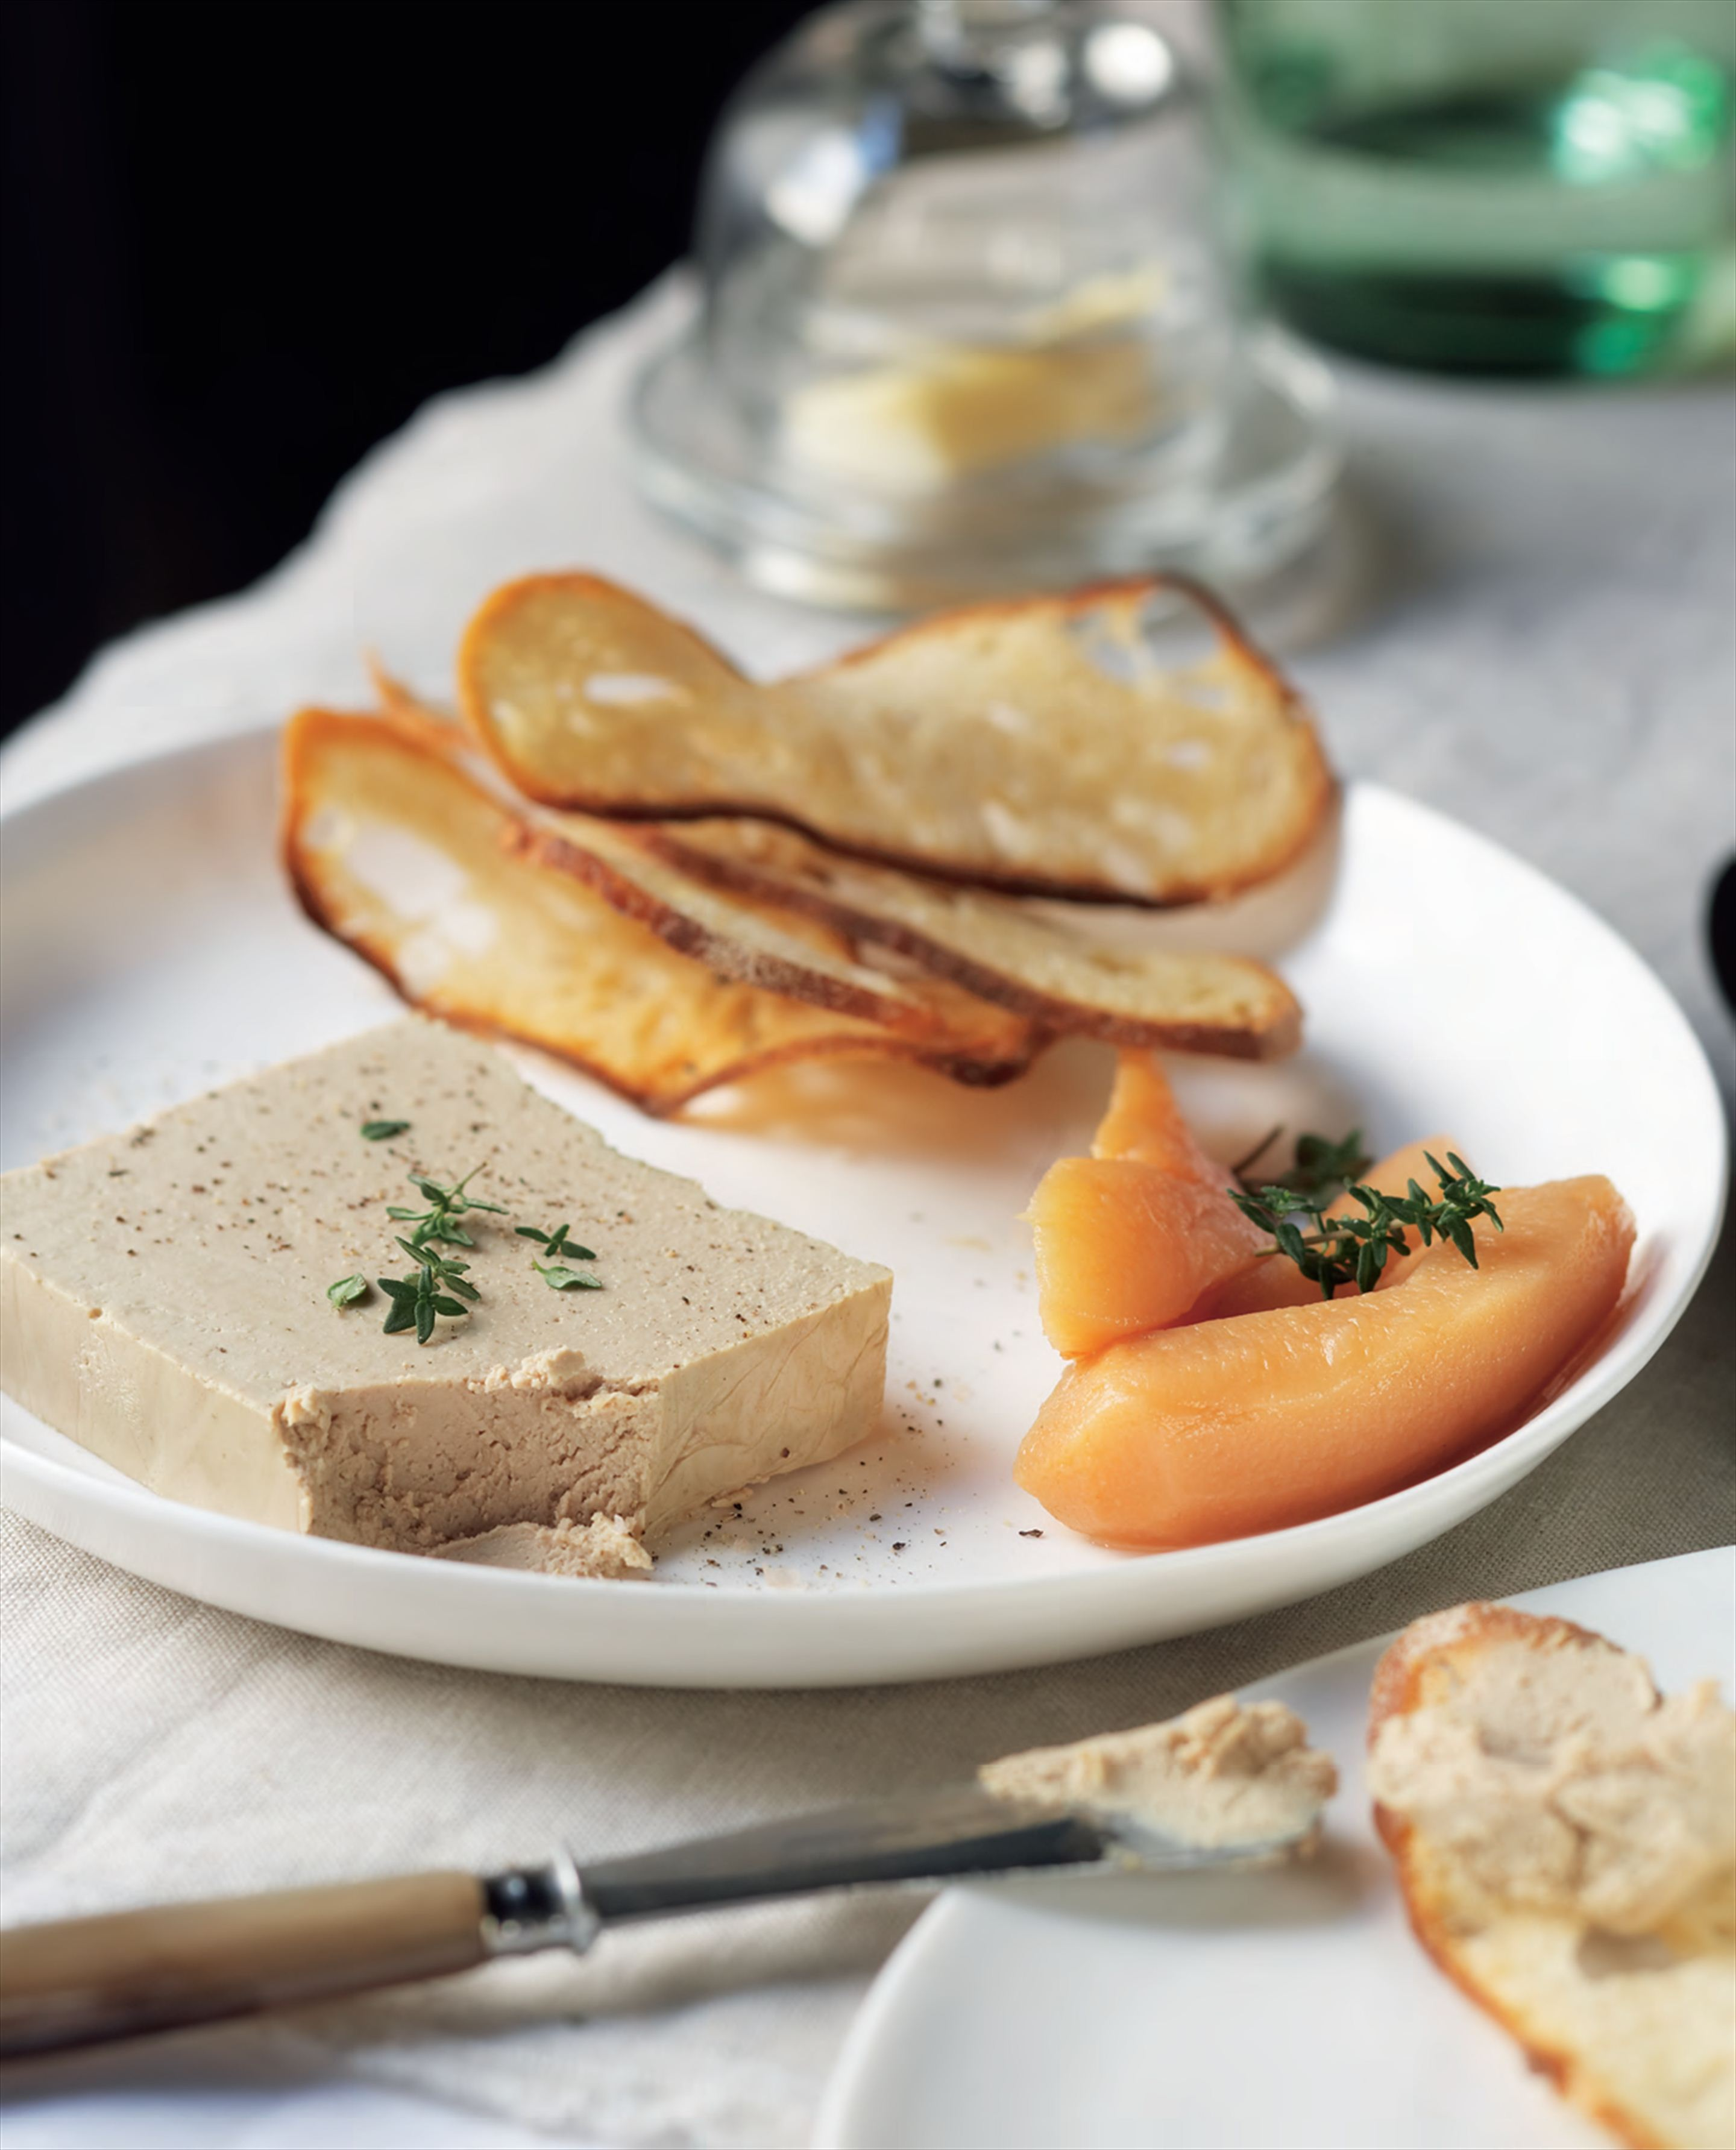 Chicken liver parfait with cognac